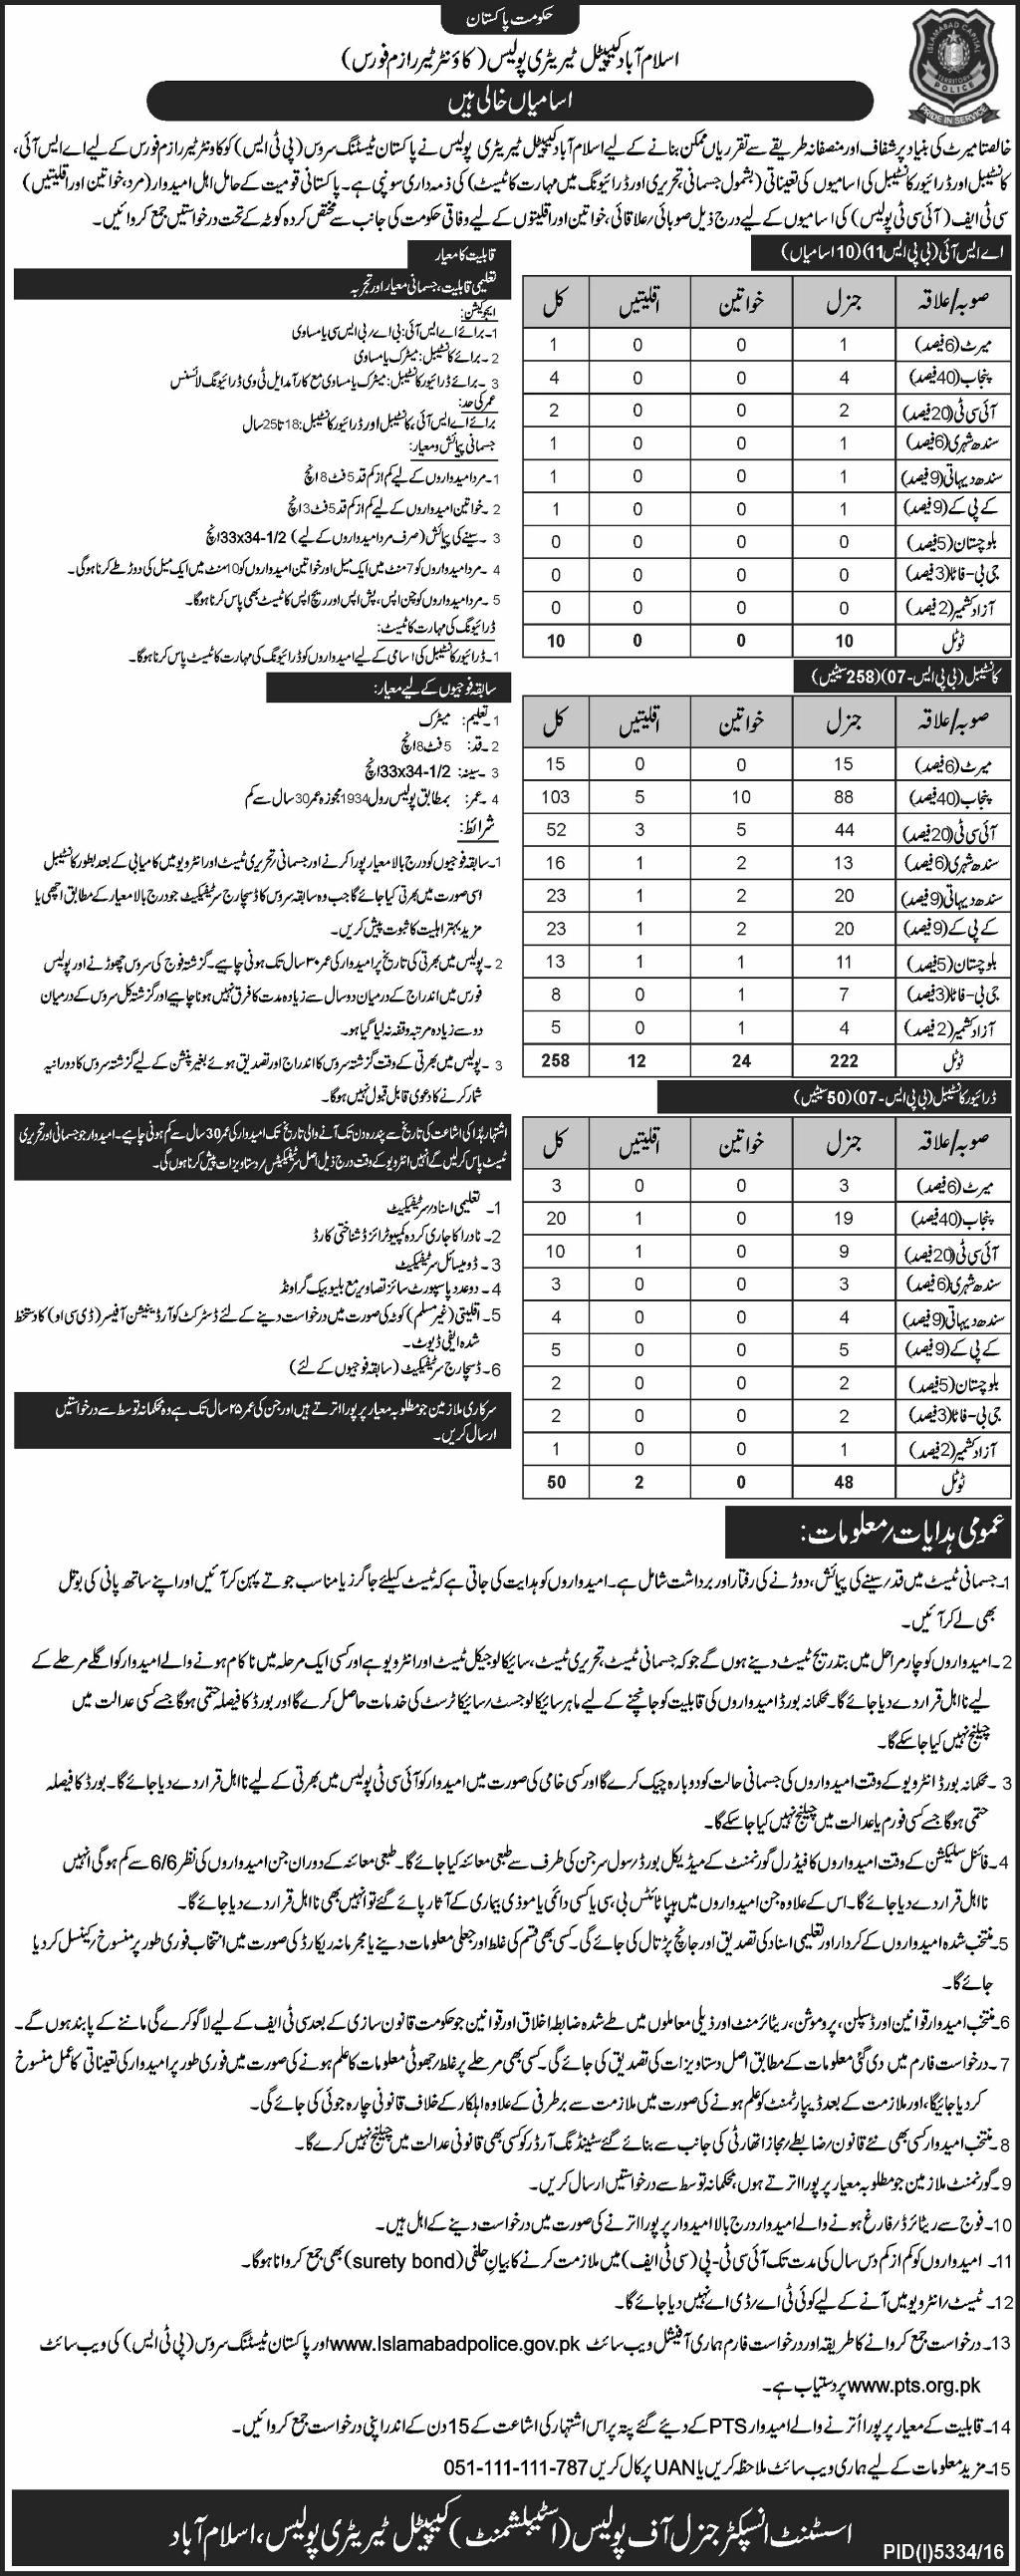 Islamabad Police ASI, Constable, Driver Jobs 2018 PTS Eligibility Last Date